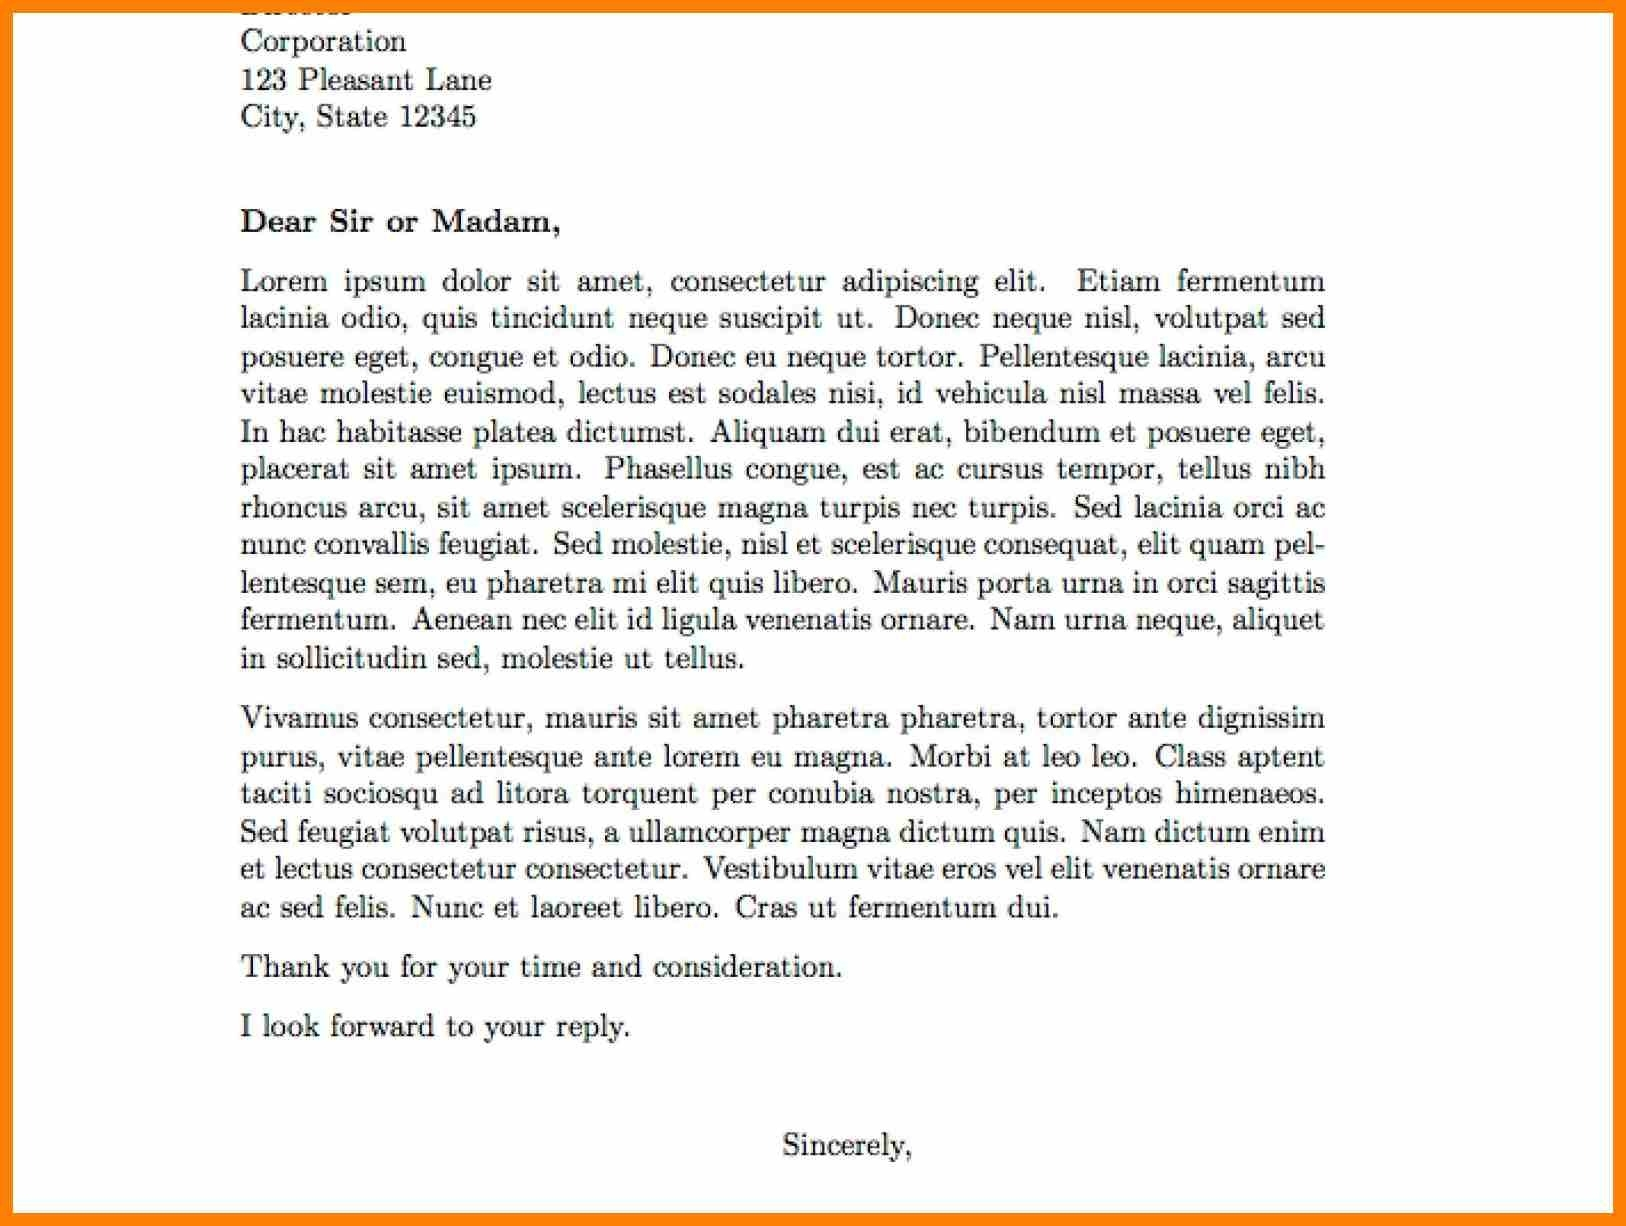 Mission Trip Support Letter Template - How to Write A Missionary Support Letter Choice Image Letter